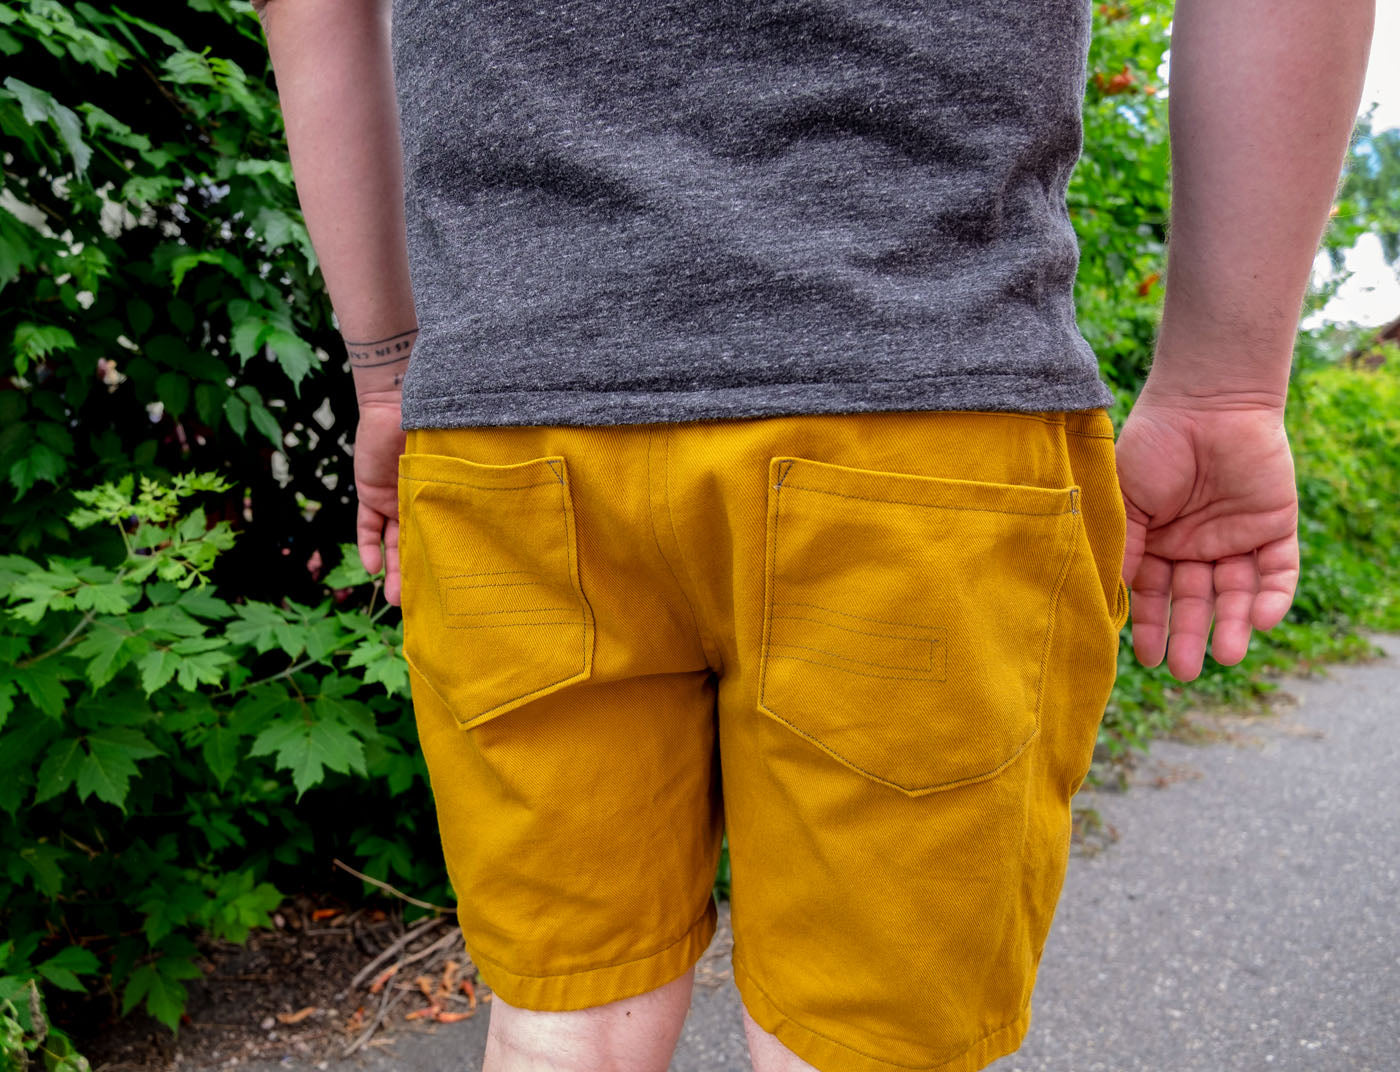 Bob's Hand Sewn Jedediah Pants as Shorts